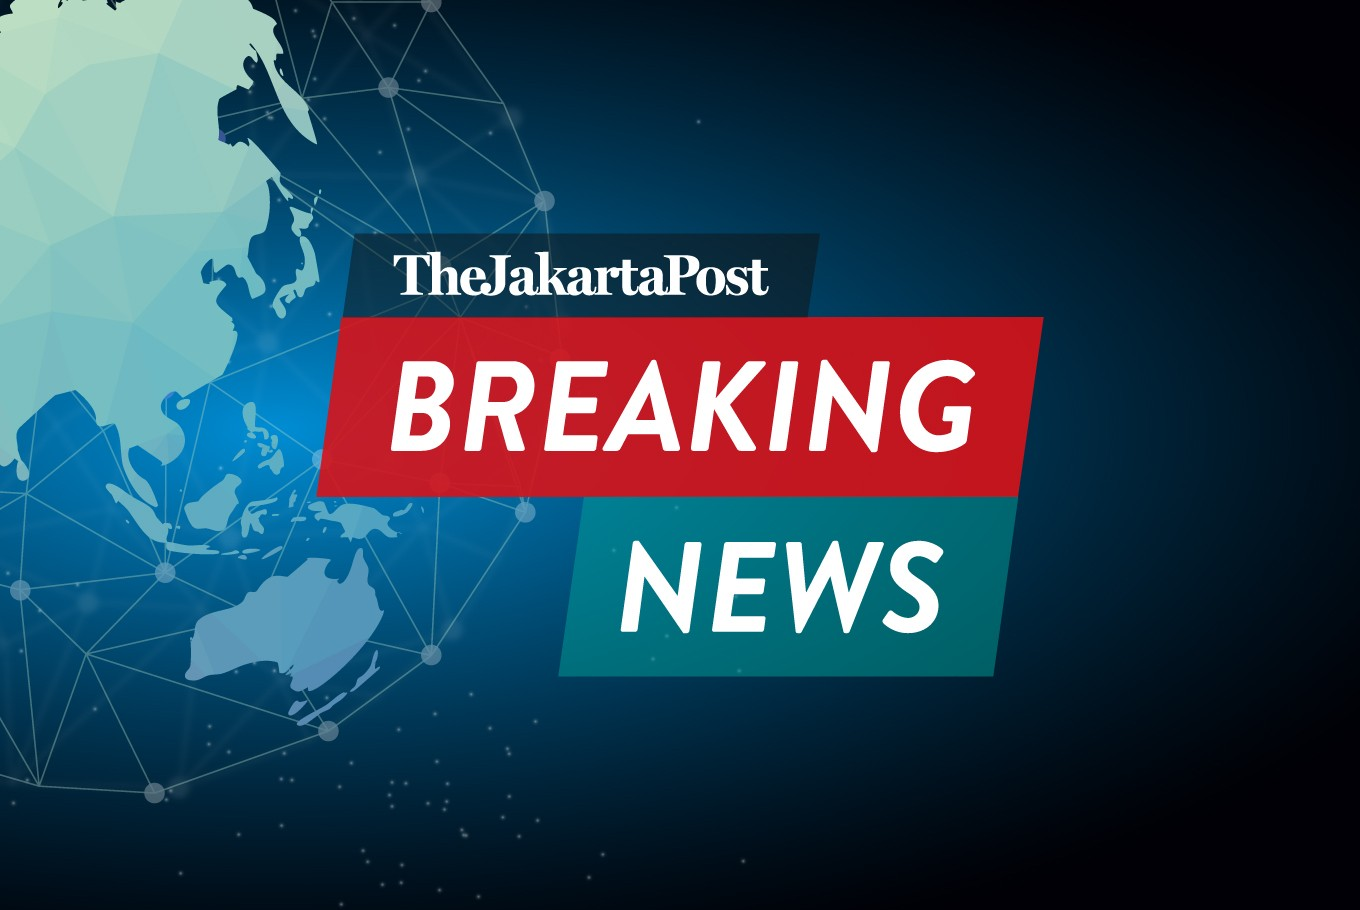 BREAKING: Another bomb attack hits Surabaya Police HQ